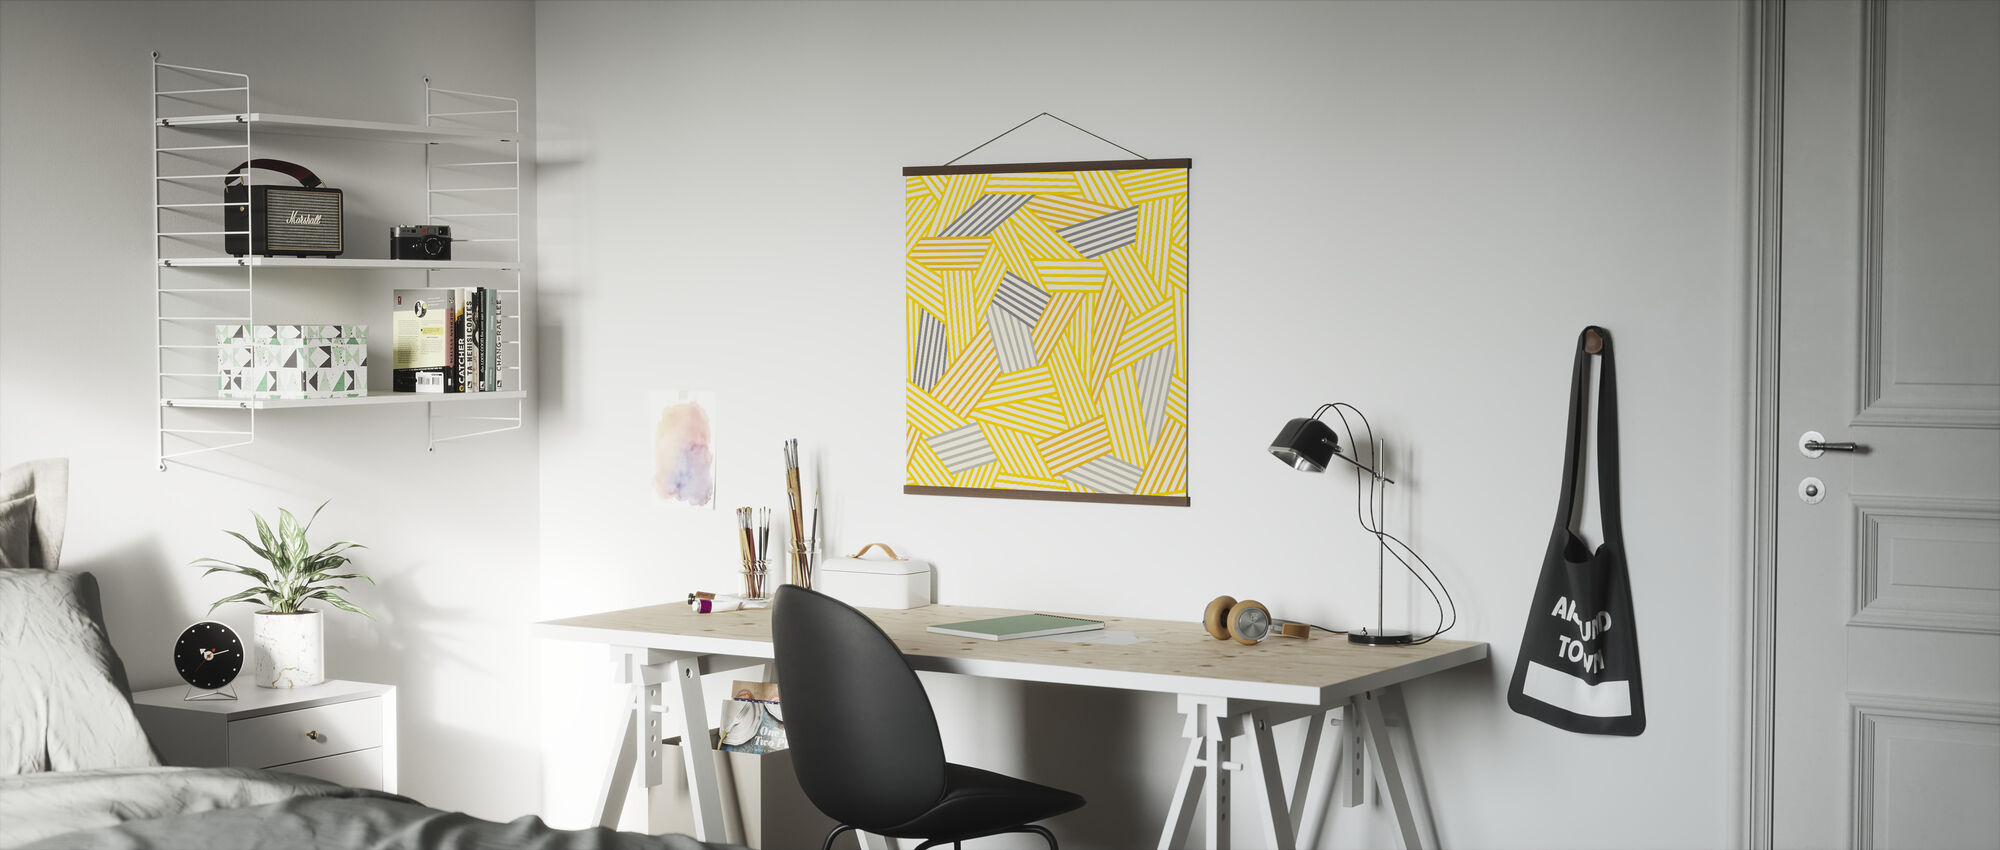 Going Geometric 3 - Poster - Office